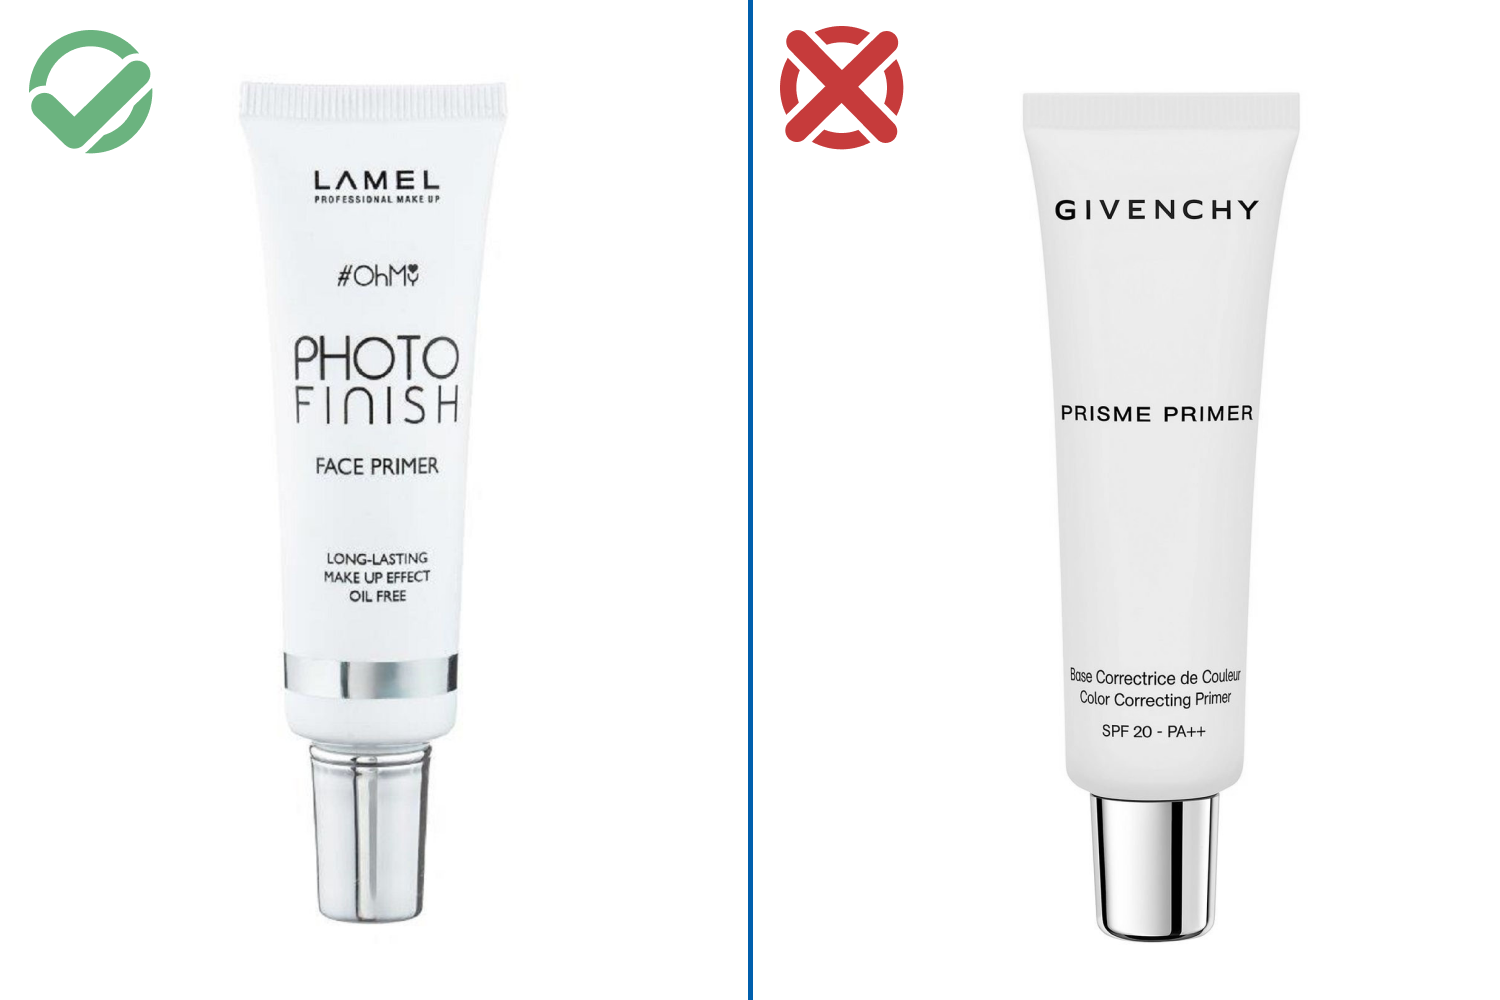 Праймер Lamel Photo Finish Face Primer — 200 рублей / Givenchy prisme primer — 1800 рублей